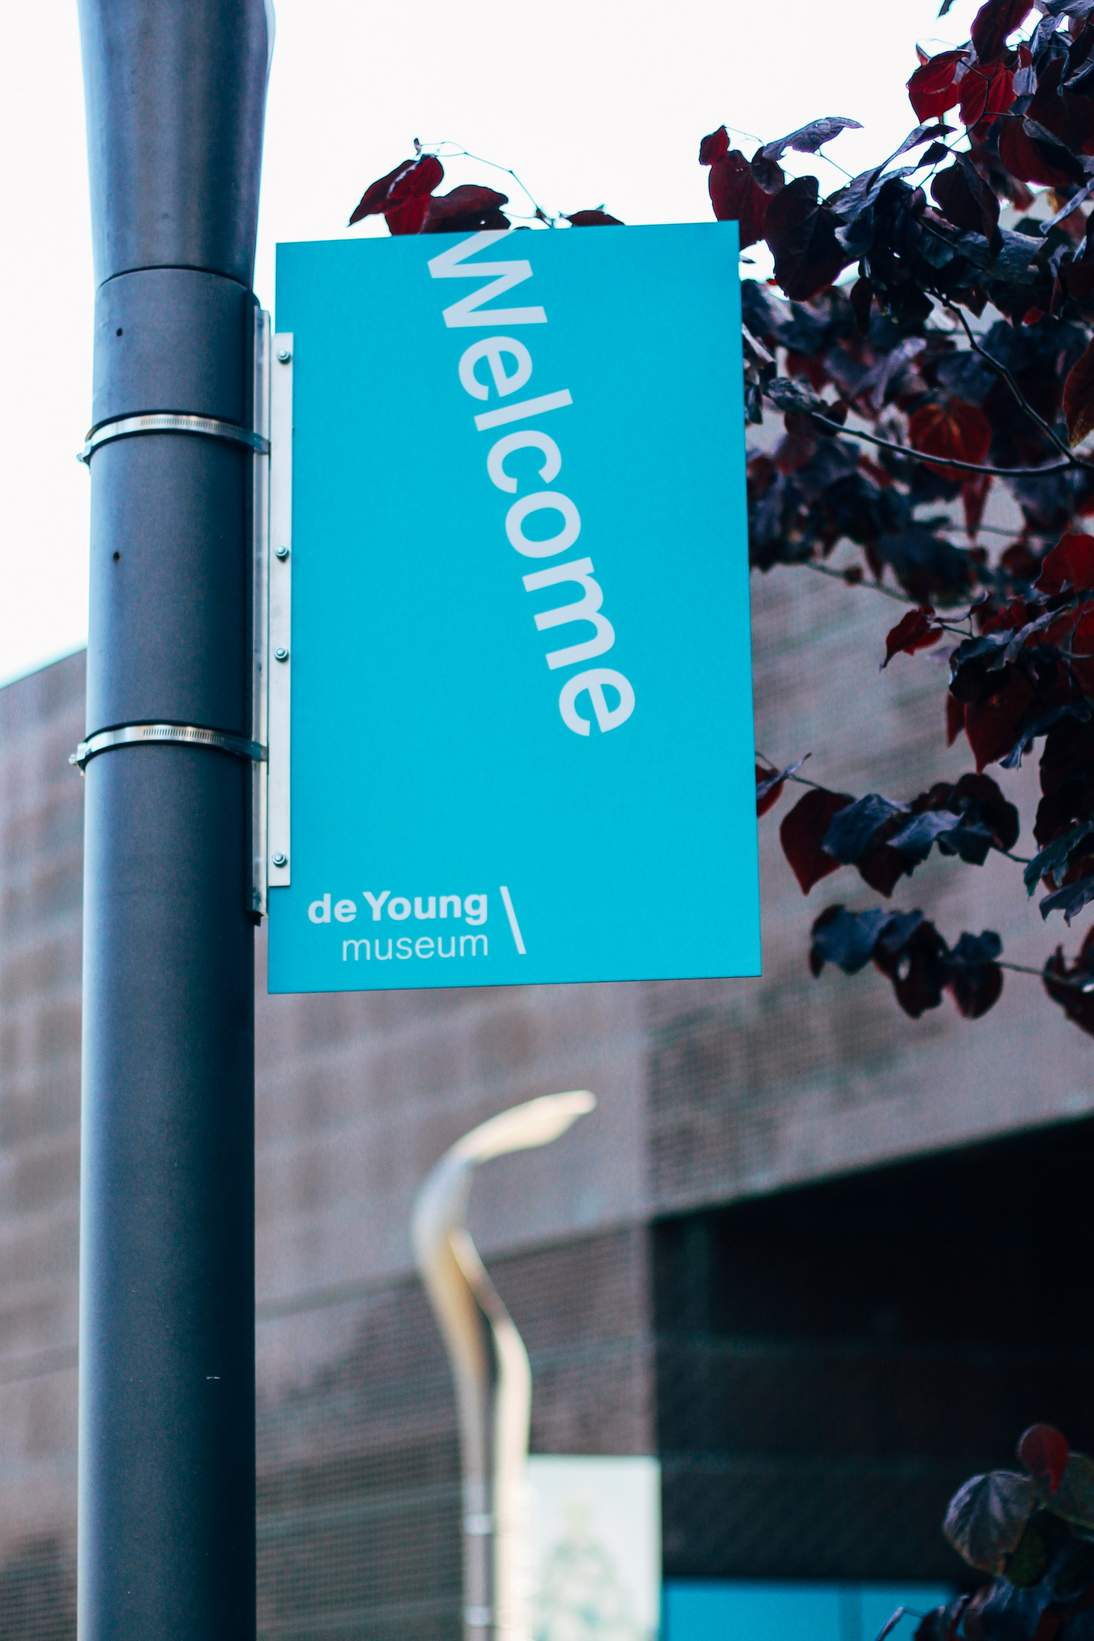 Refreshed welcome signage at the de Young museum